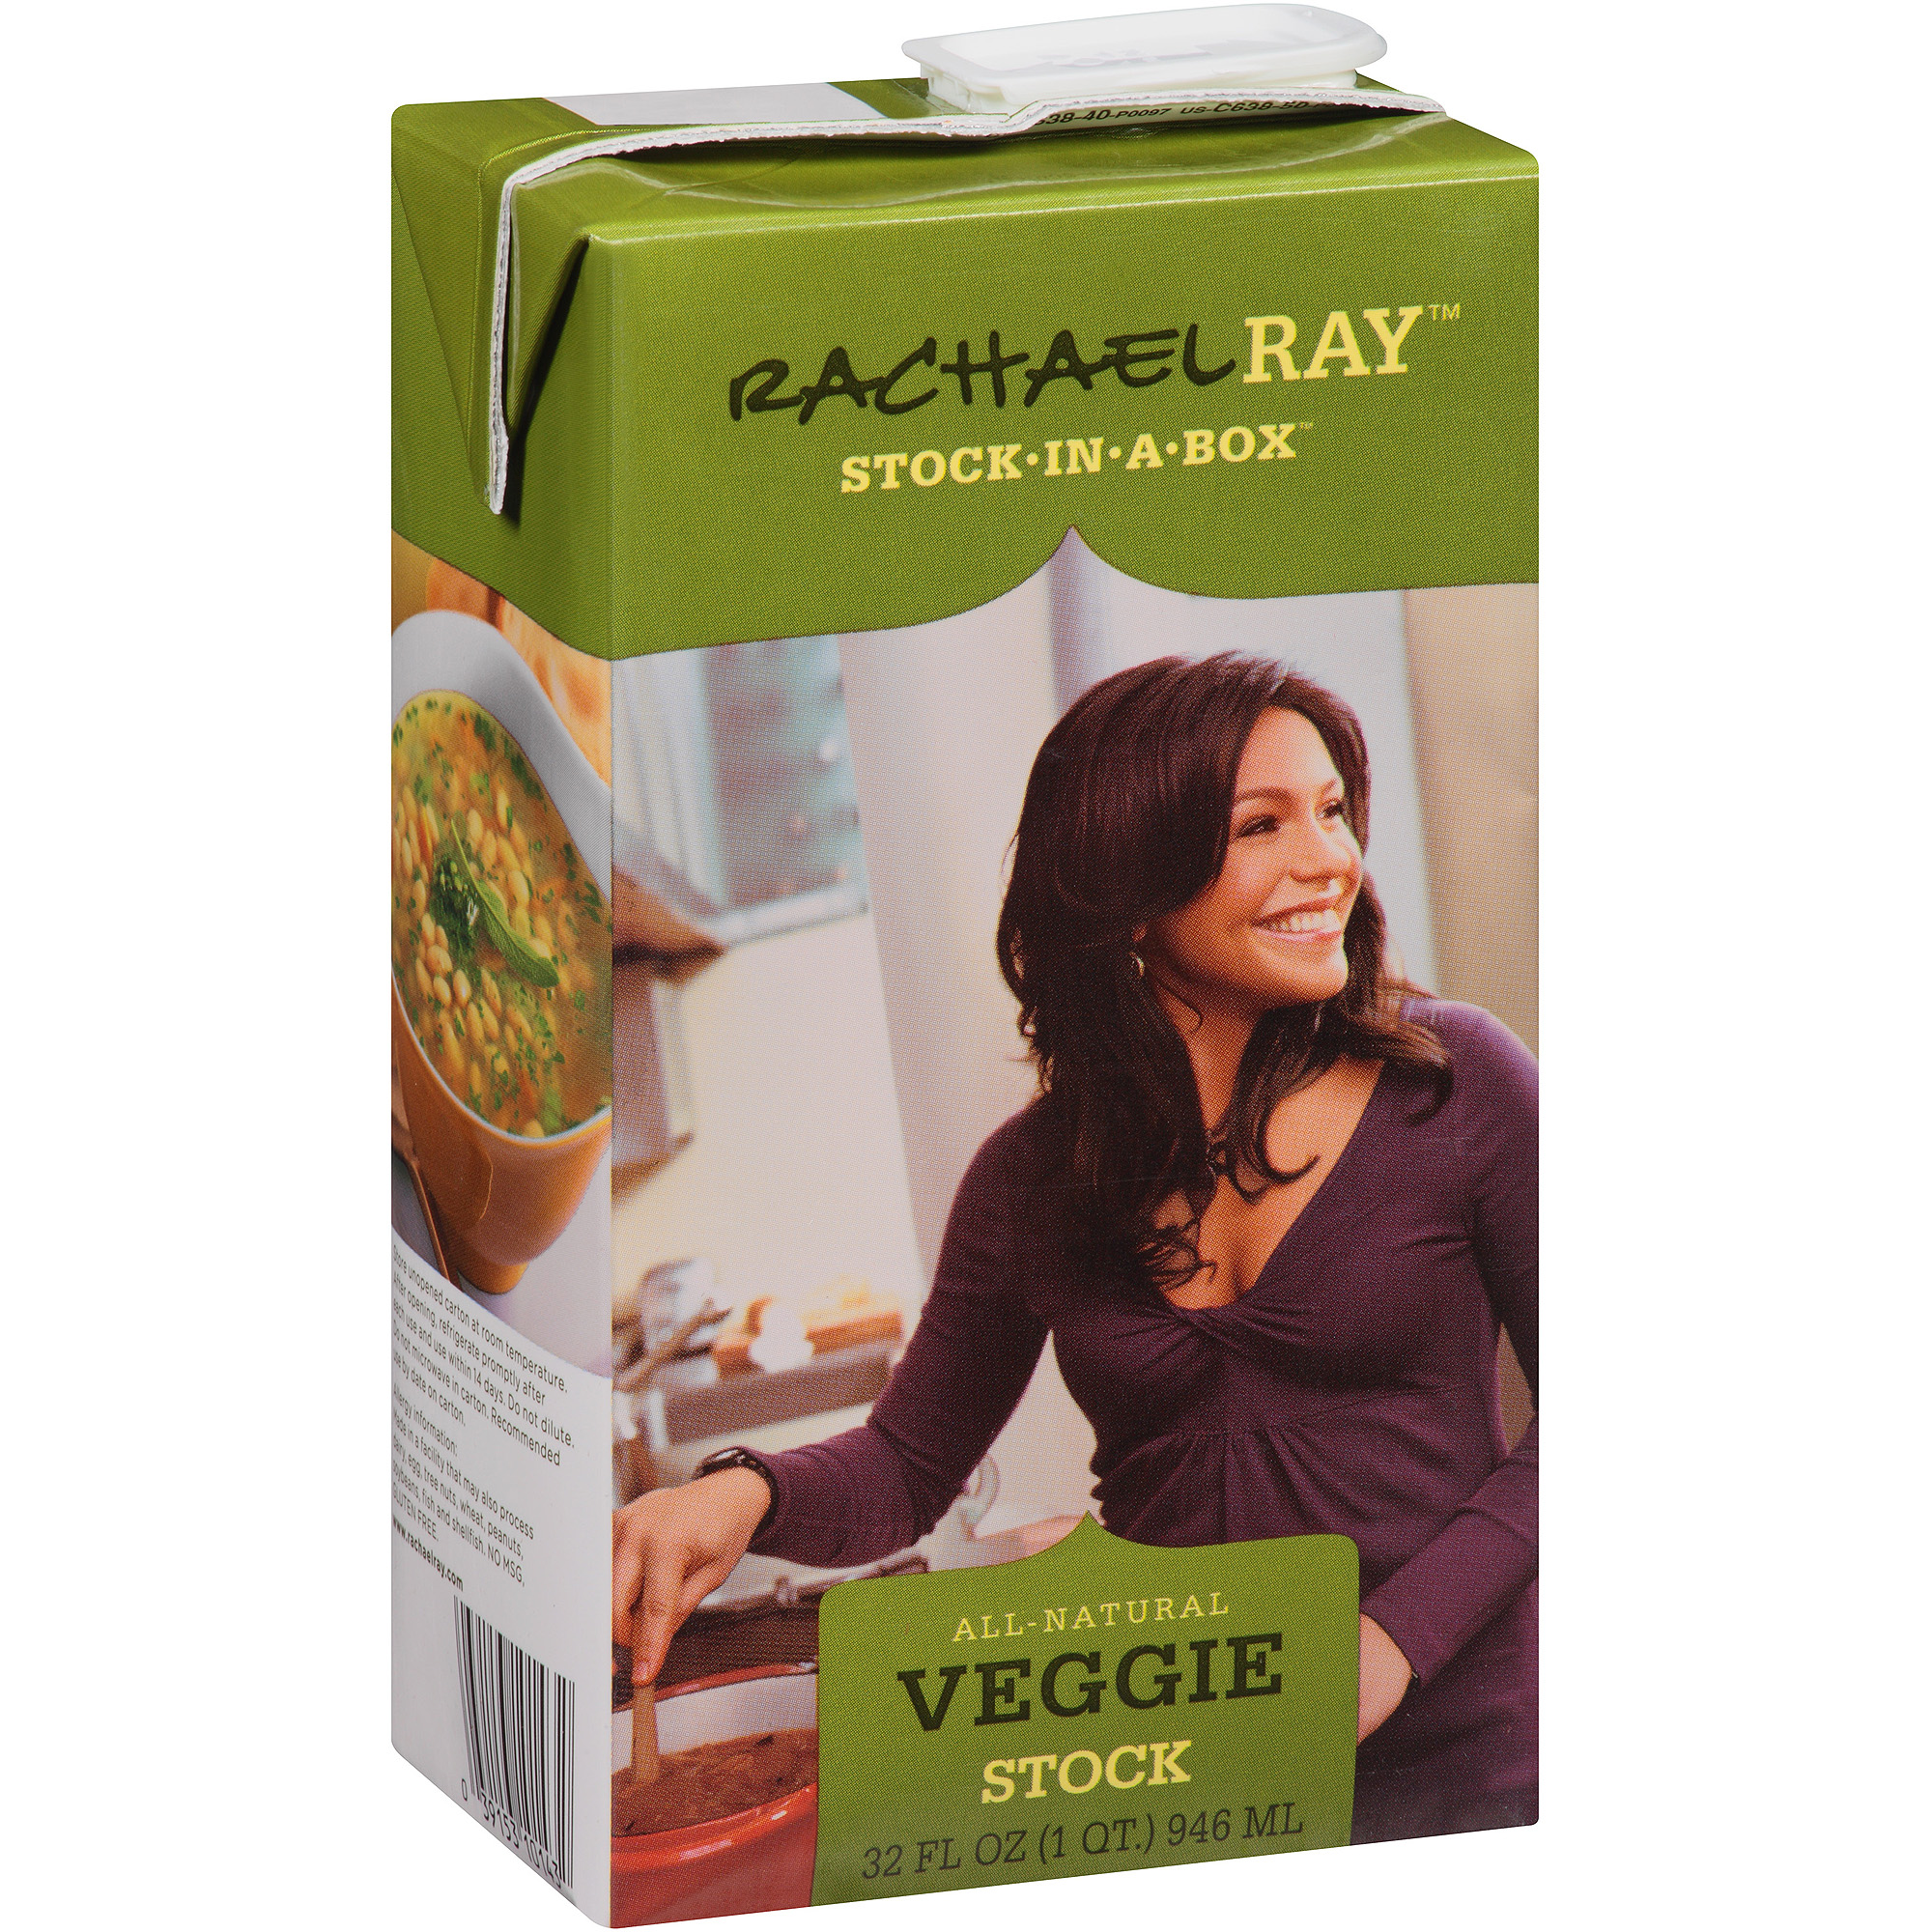 Rachael Ray Veggie Stock, 32 fl oz